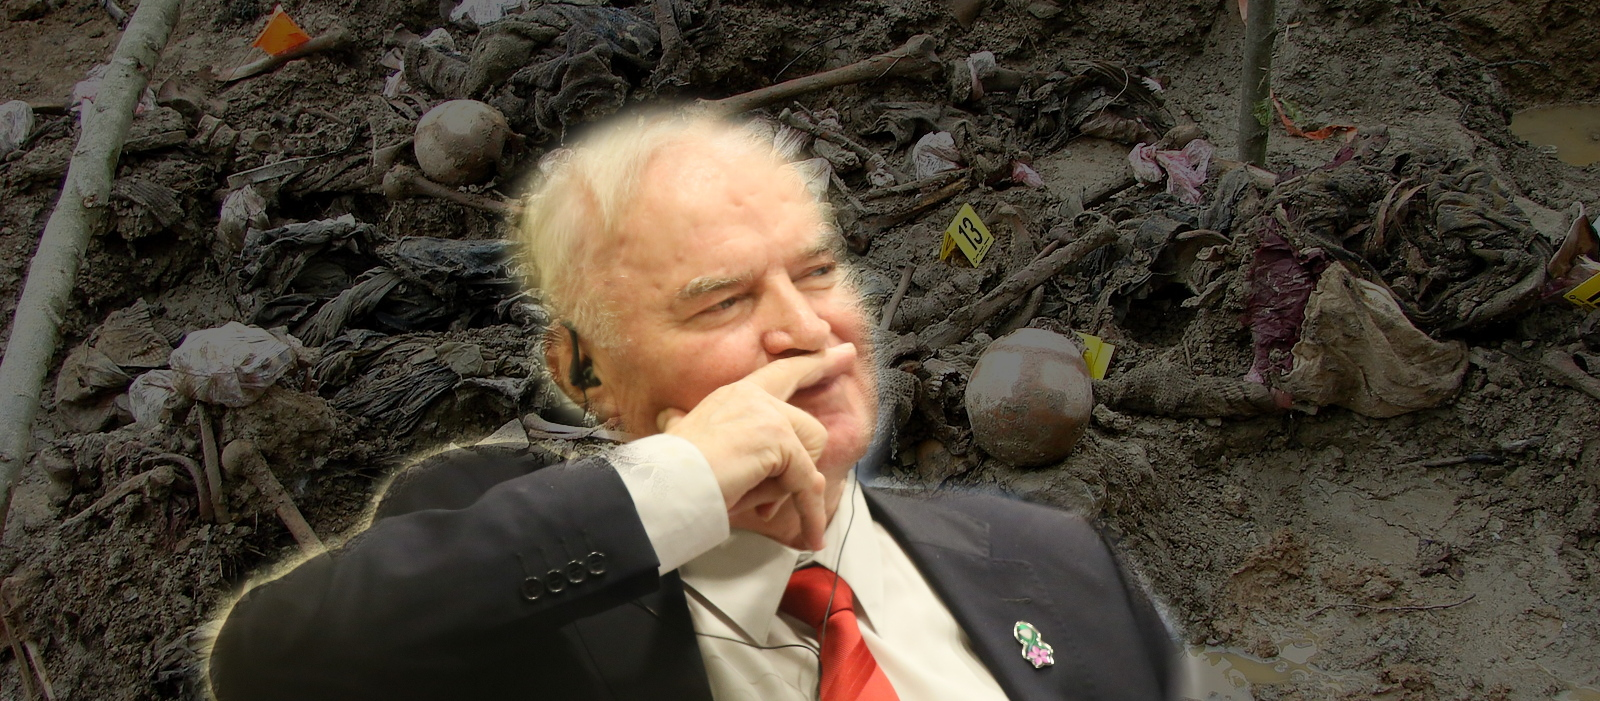 Mladic the genocide: a moment of silence for the Balkans' lost lives, honor and credibility